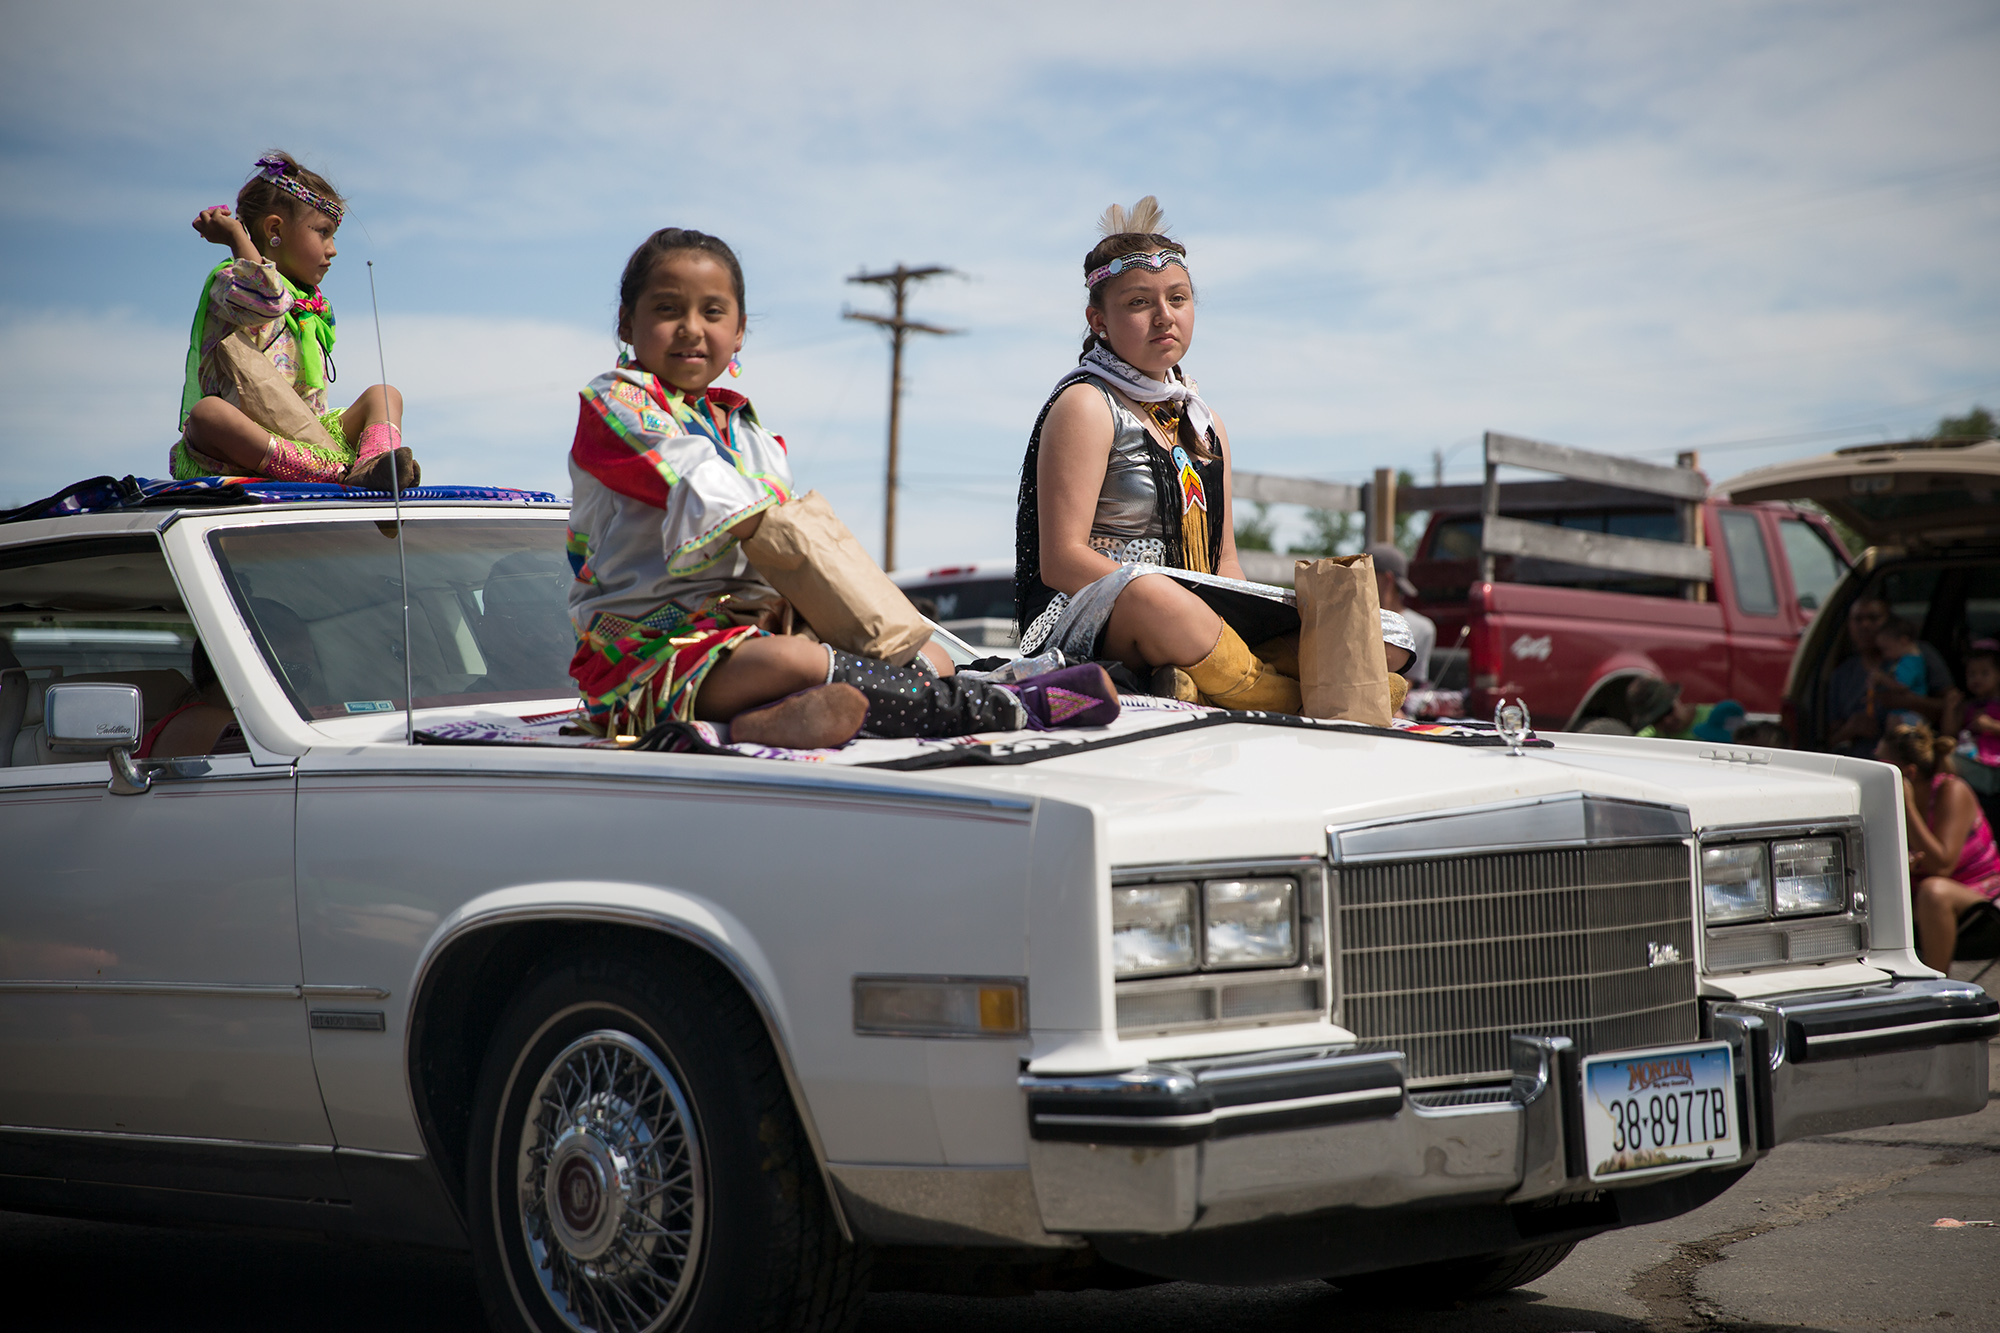 Young children sit on a car during a parade through Browning, Montana during North American Indian Days.